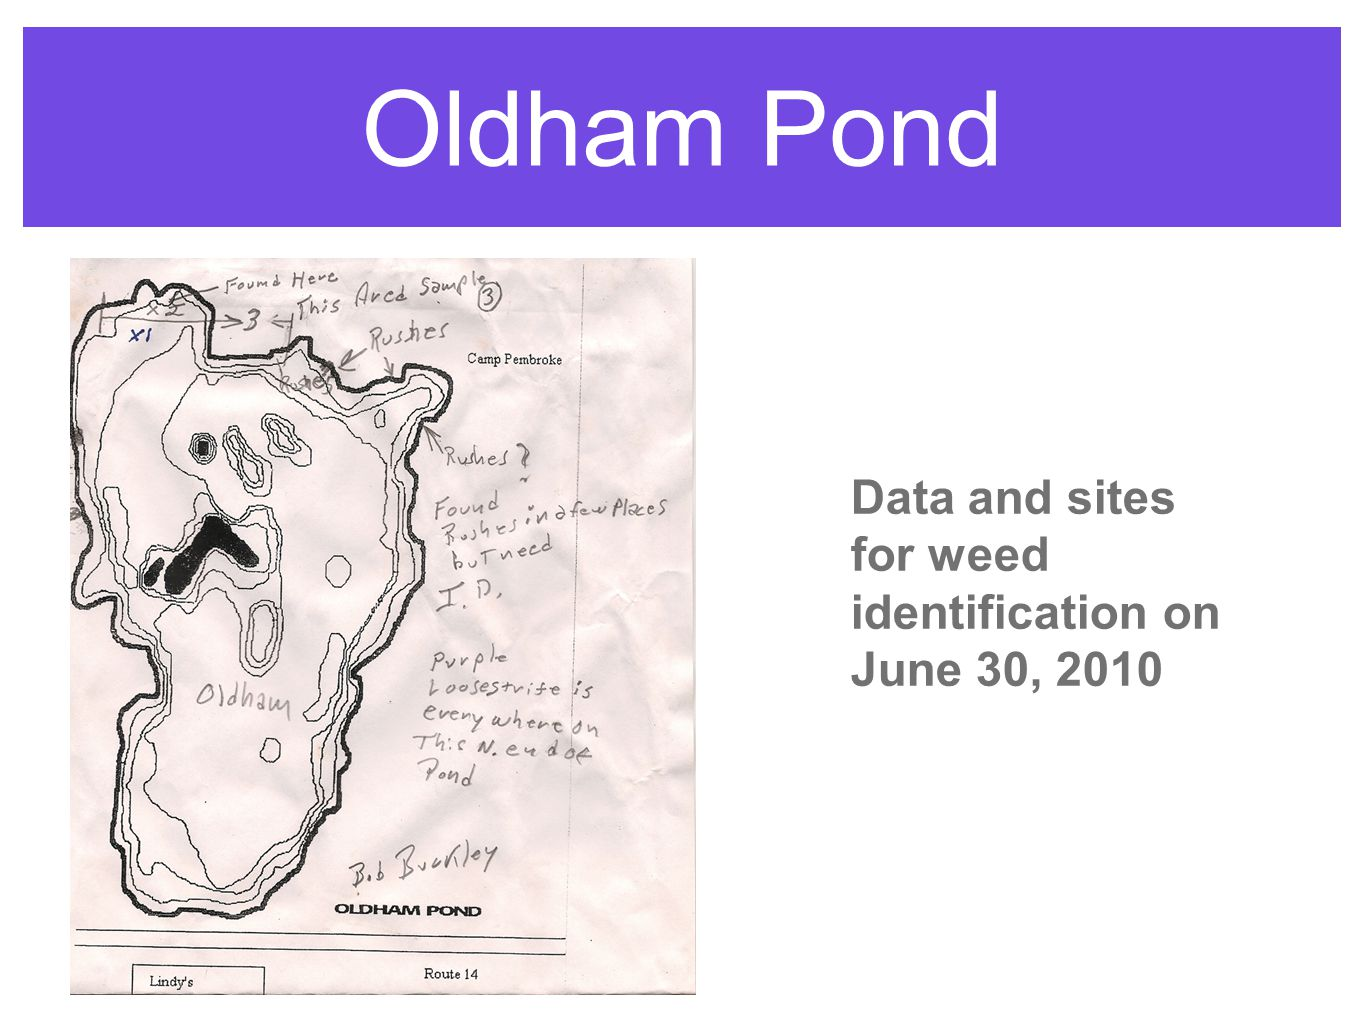 Oldham Pond Data and sites for weed identification on June 30, 2010